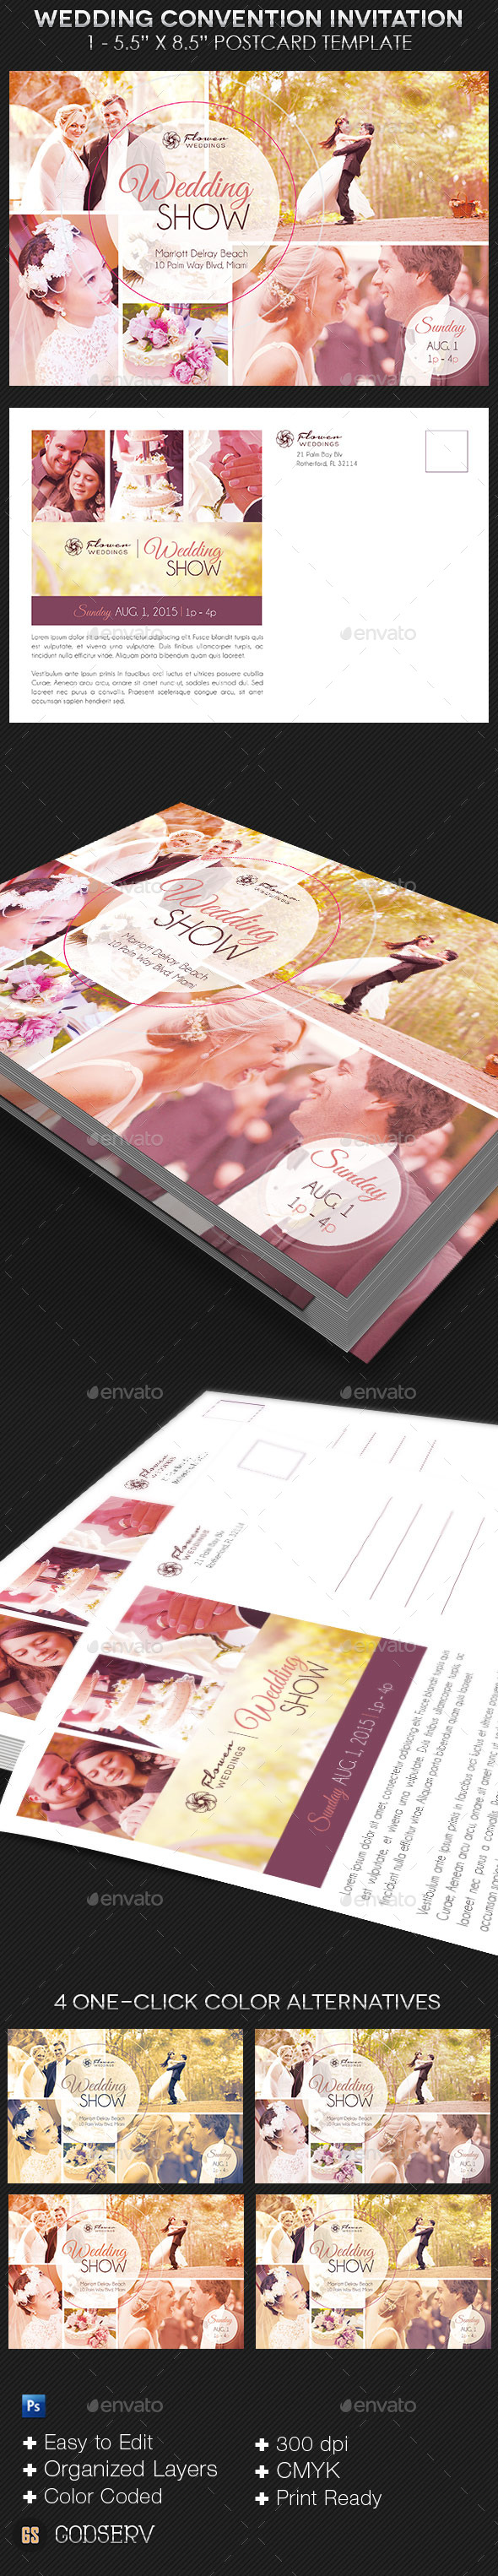 Wedding Convention Invitation Template